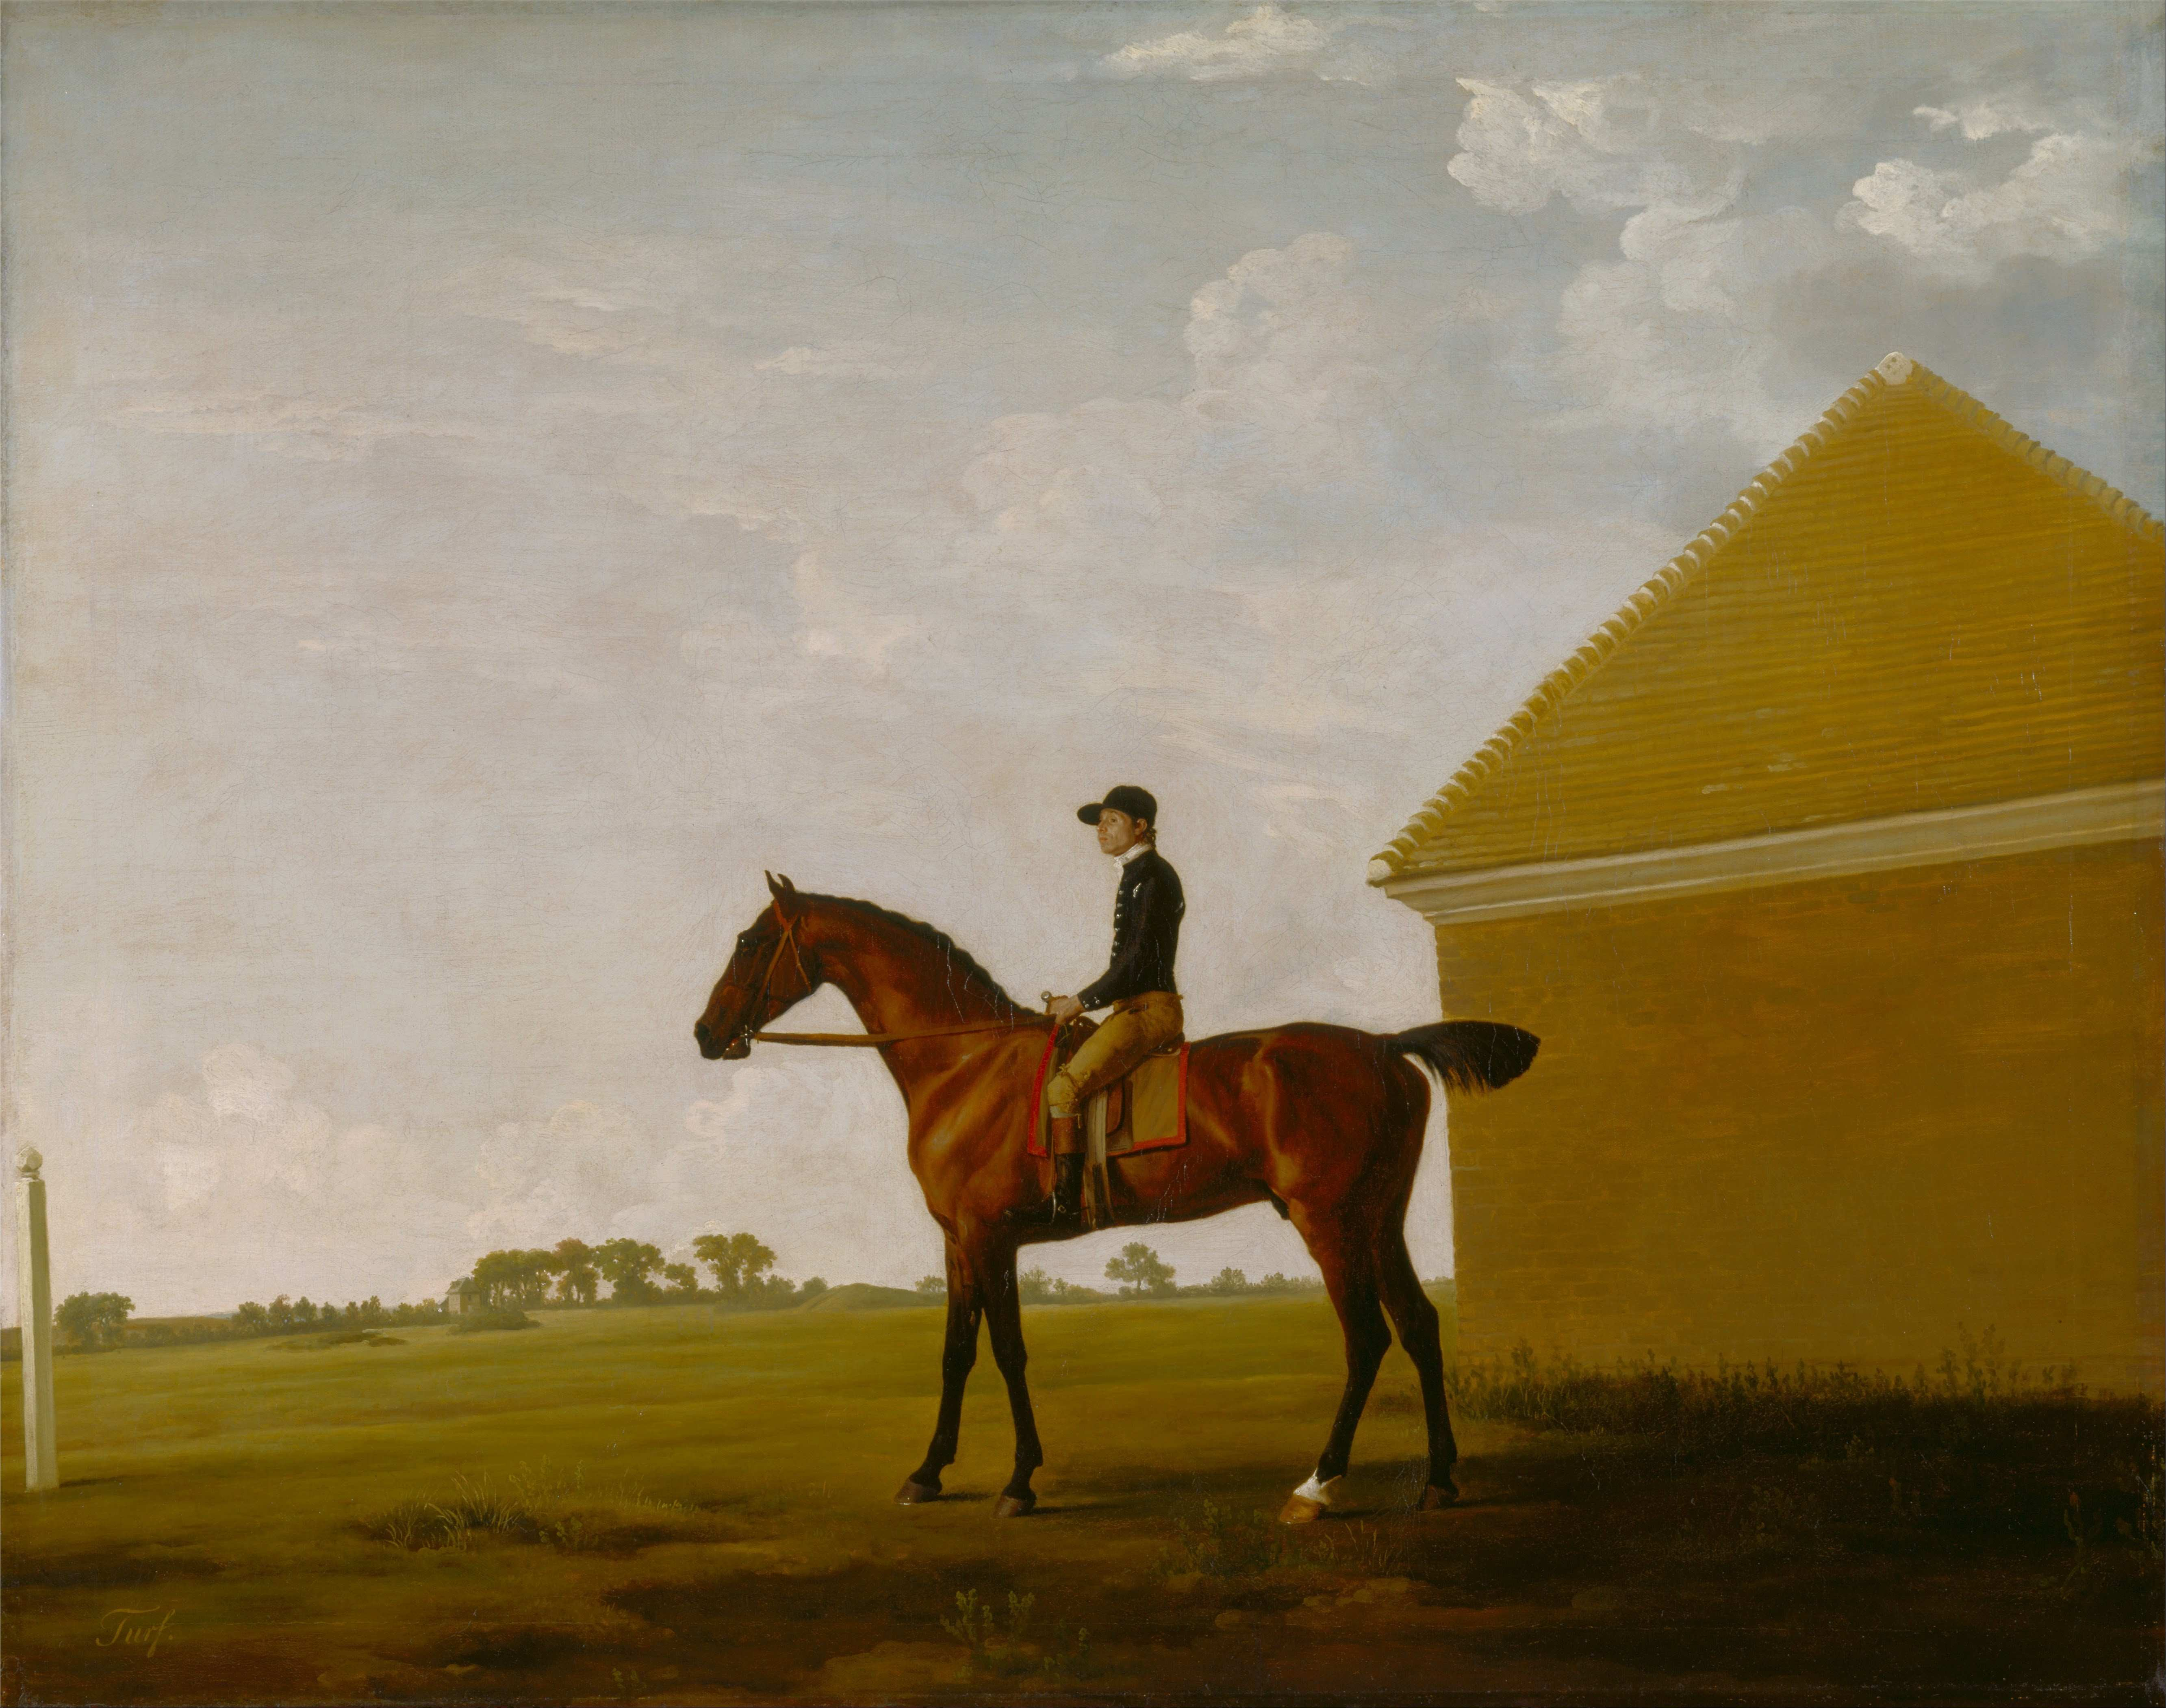 Top 10 Depictions of Sports and Athletes in Art History